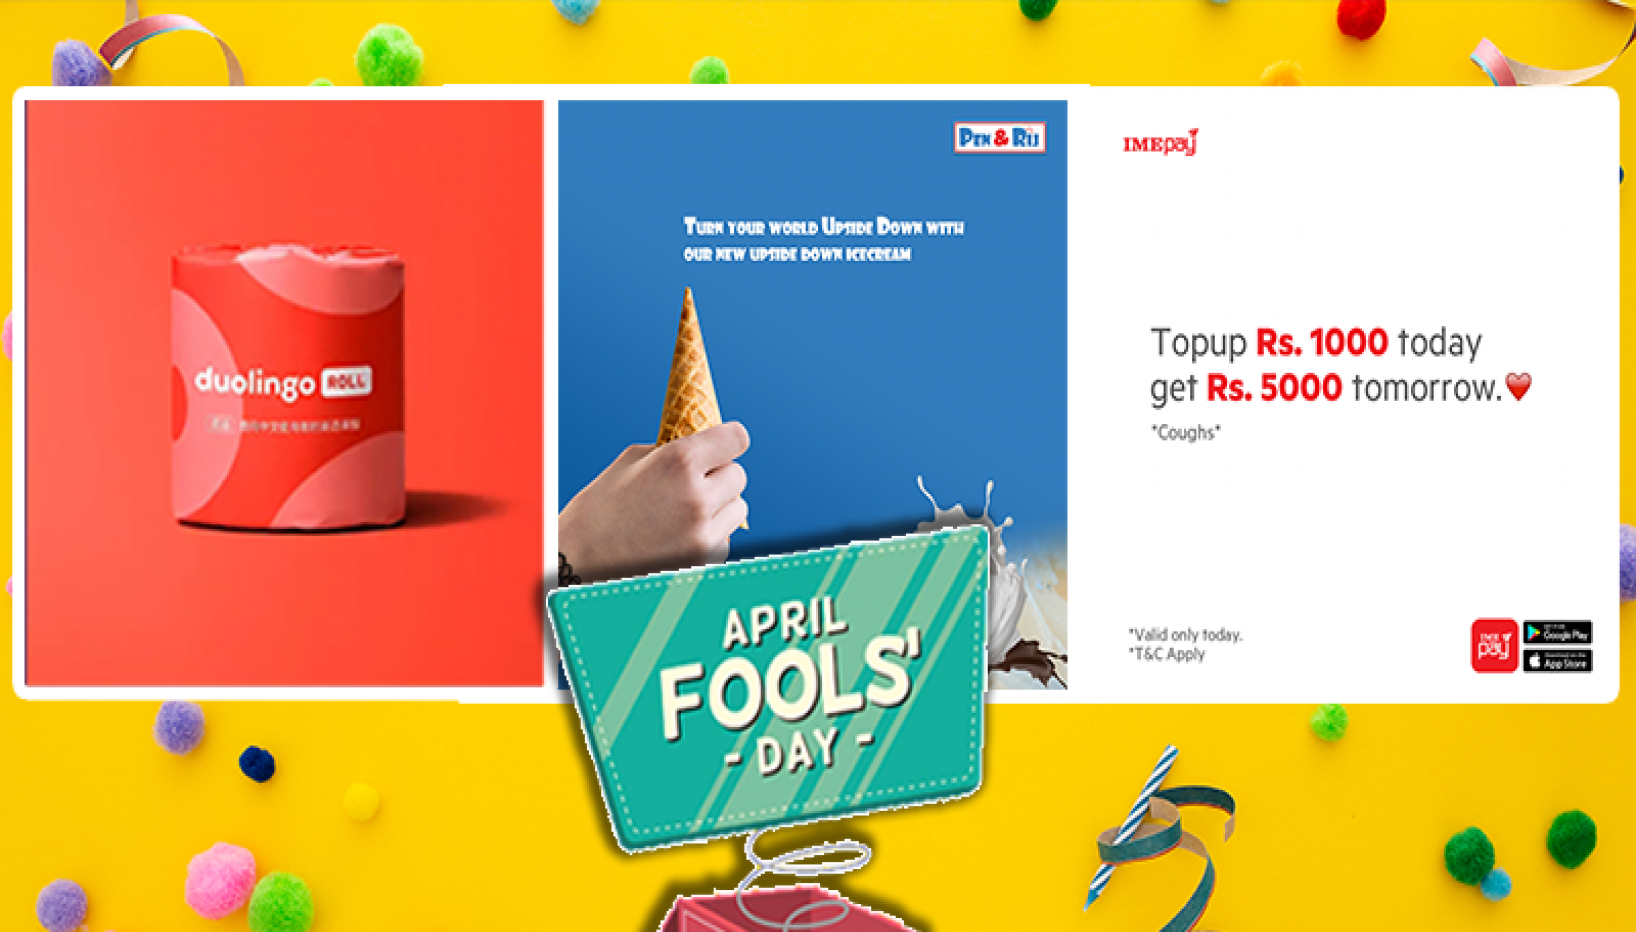 Duolingo Toilet Rolls And Doodh Patti Lays; Here's How Various Brands Celebrated April Fool's Day